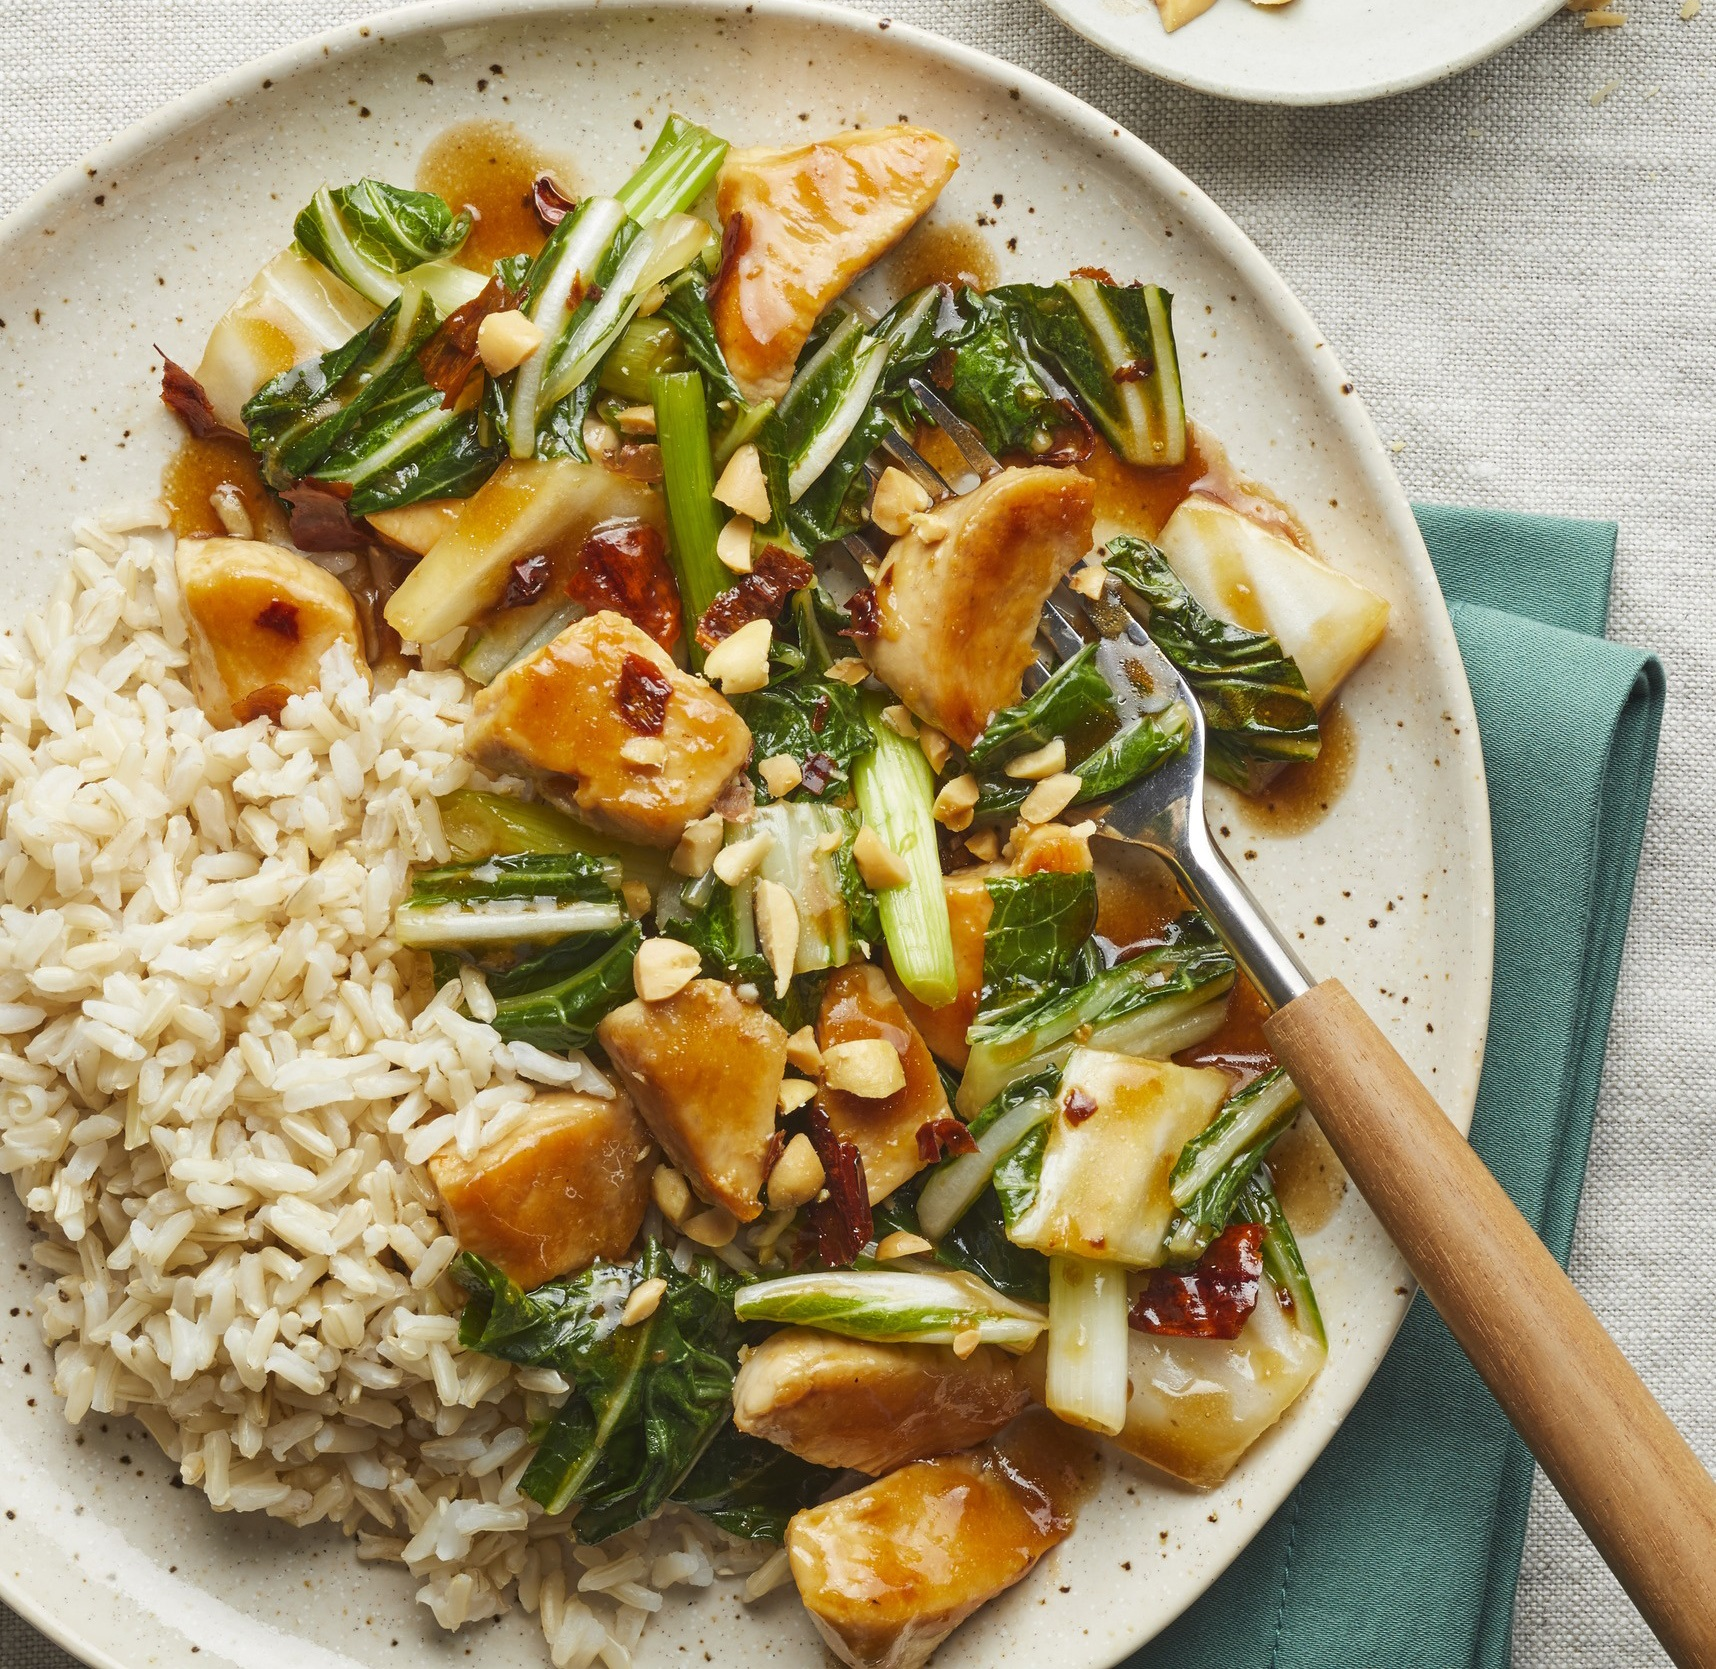 Healthier Kung Pao Chicken Allrecipes Magazine